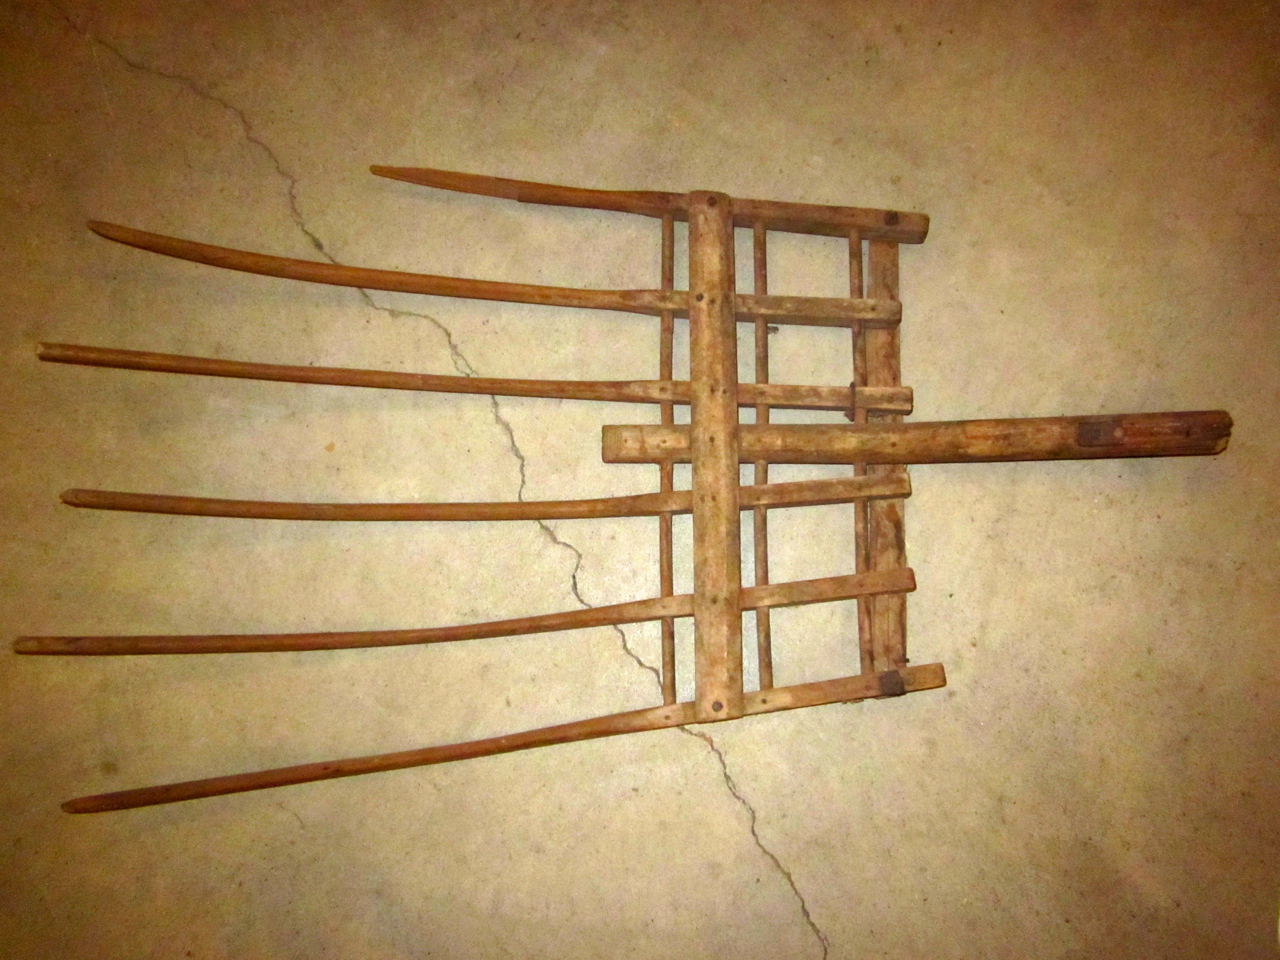 Wooden hay fork